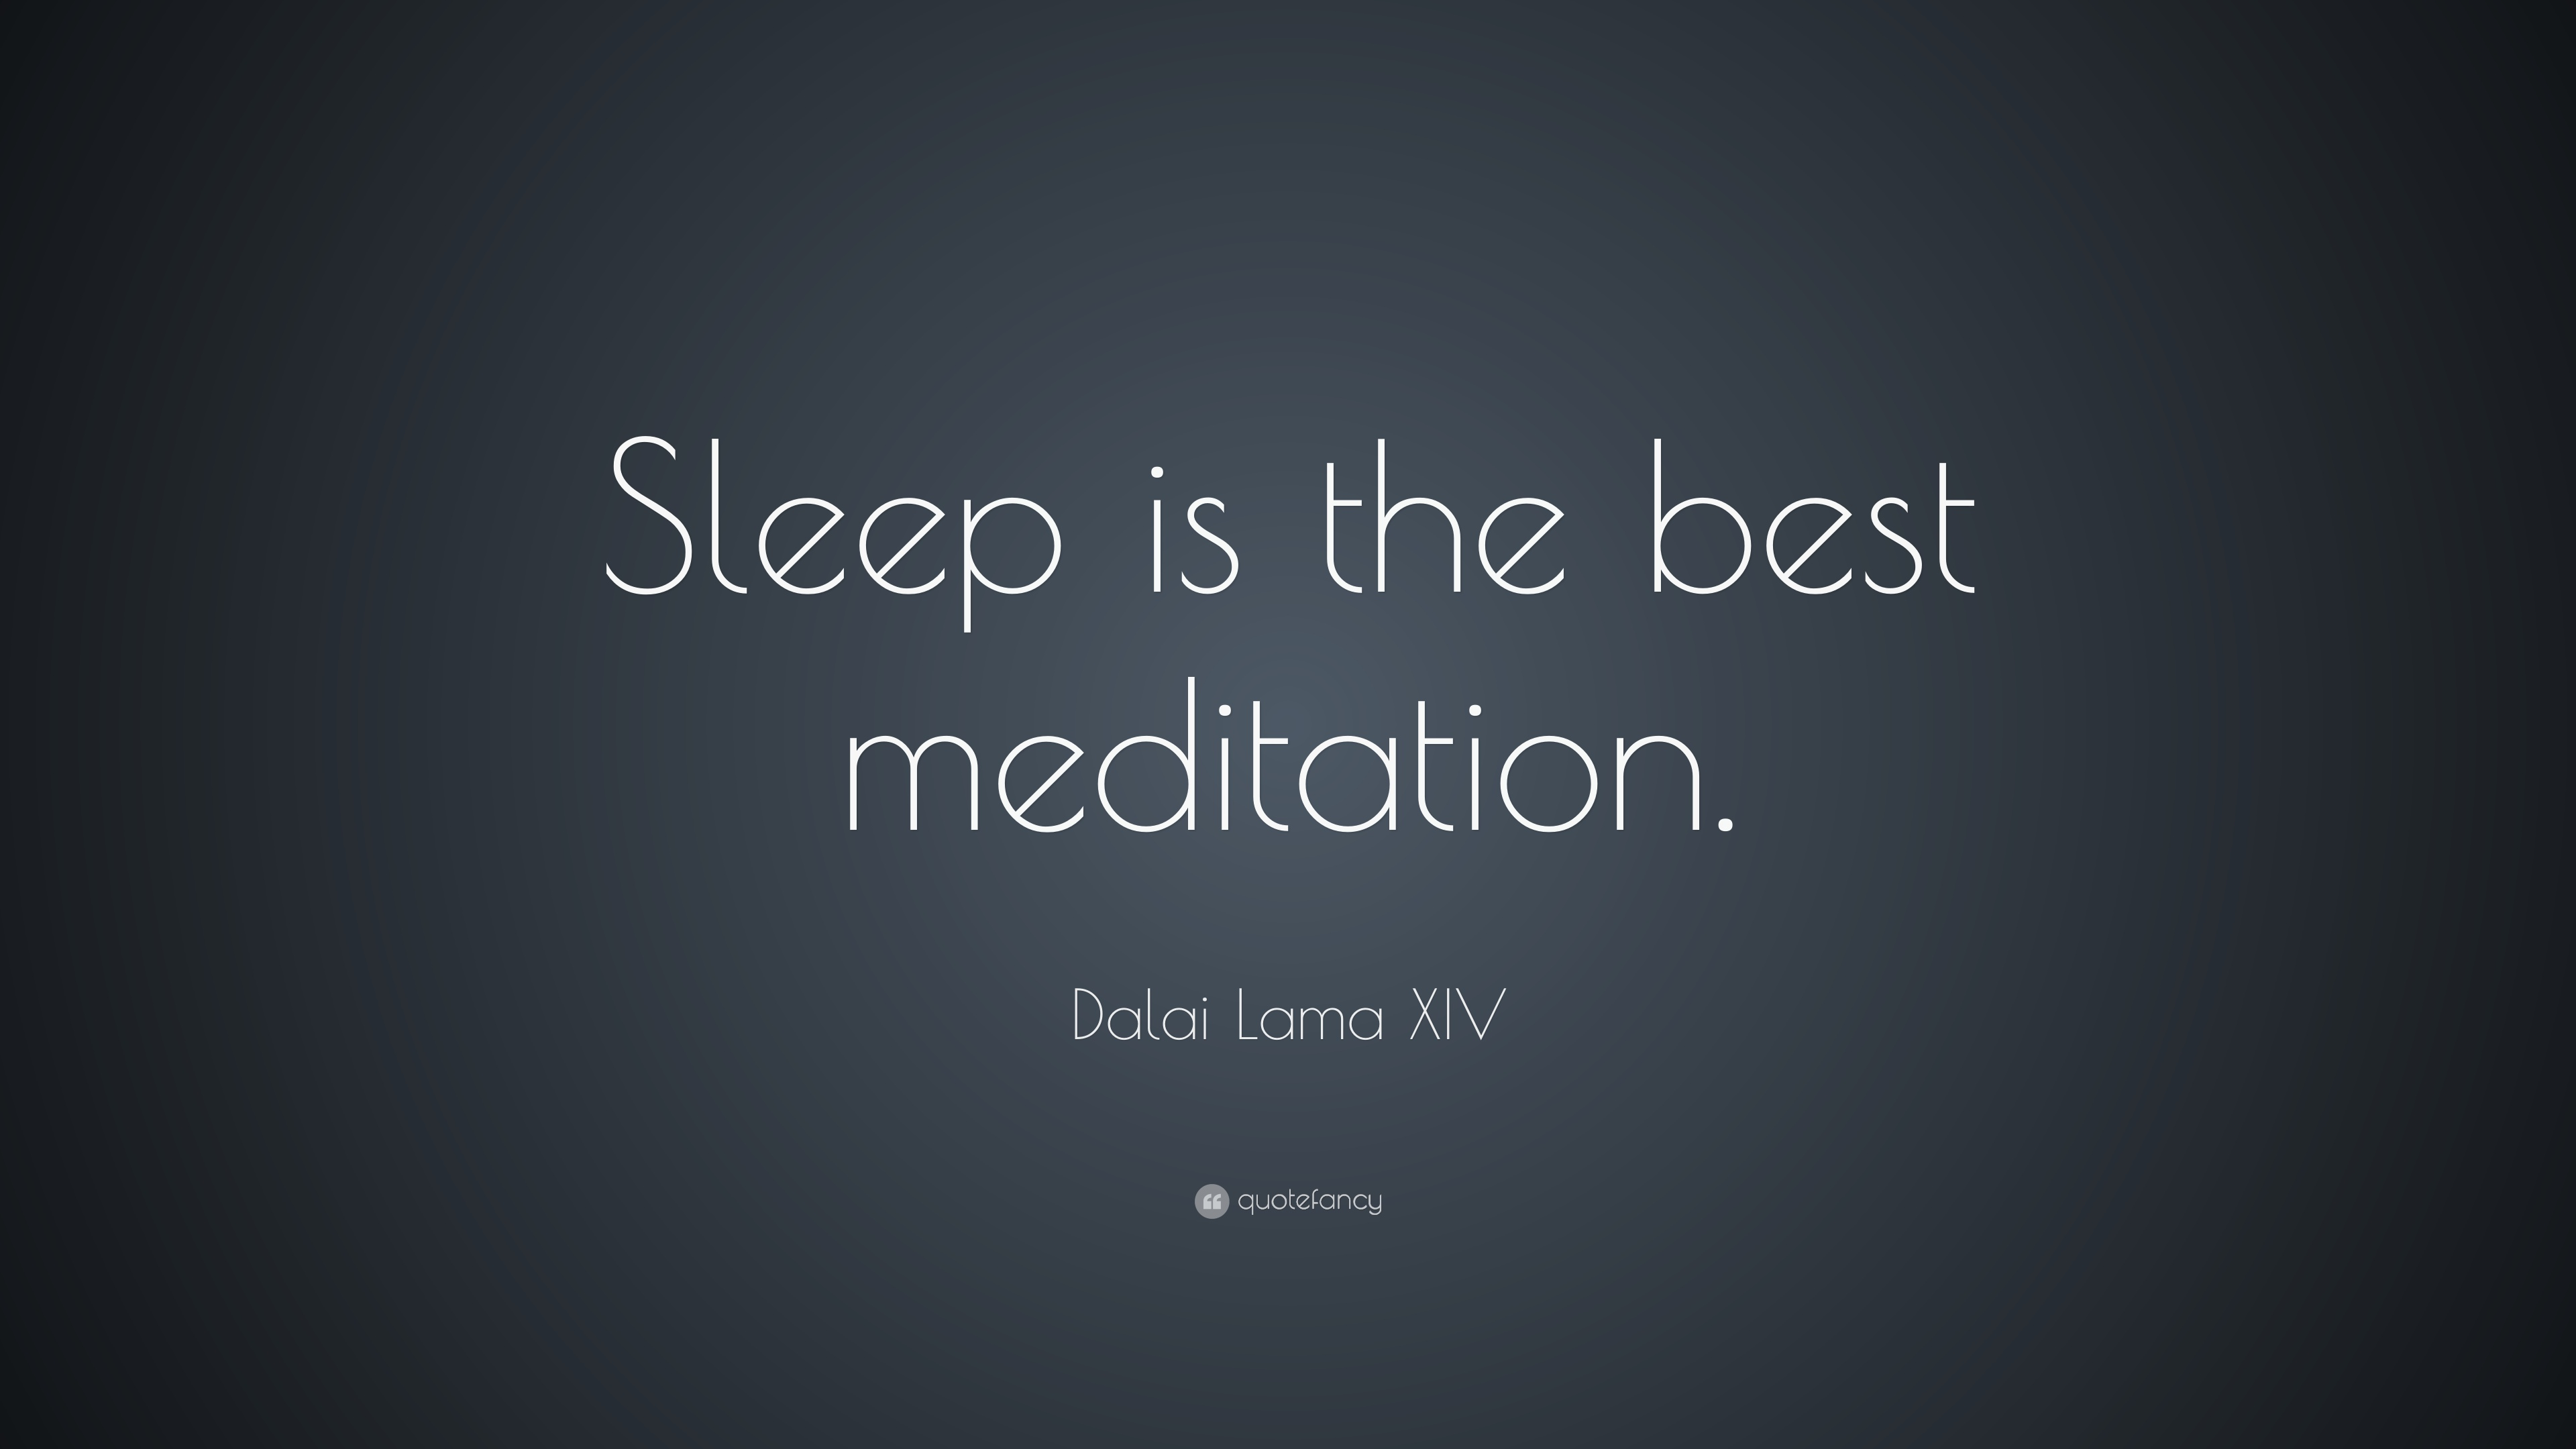 Best Inspirational Quotes Wallpapers Hd Dalai Lama Xiv Quote Sleep Is The Best Meditation 19